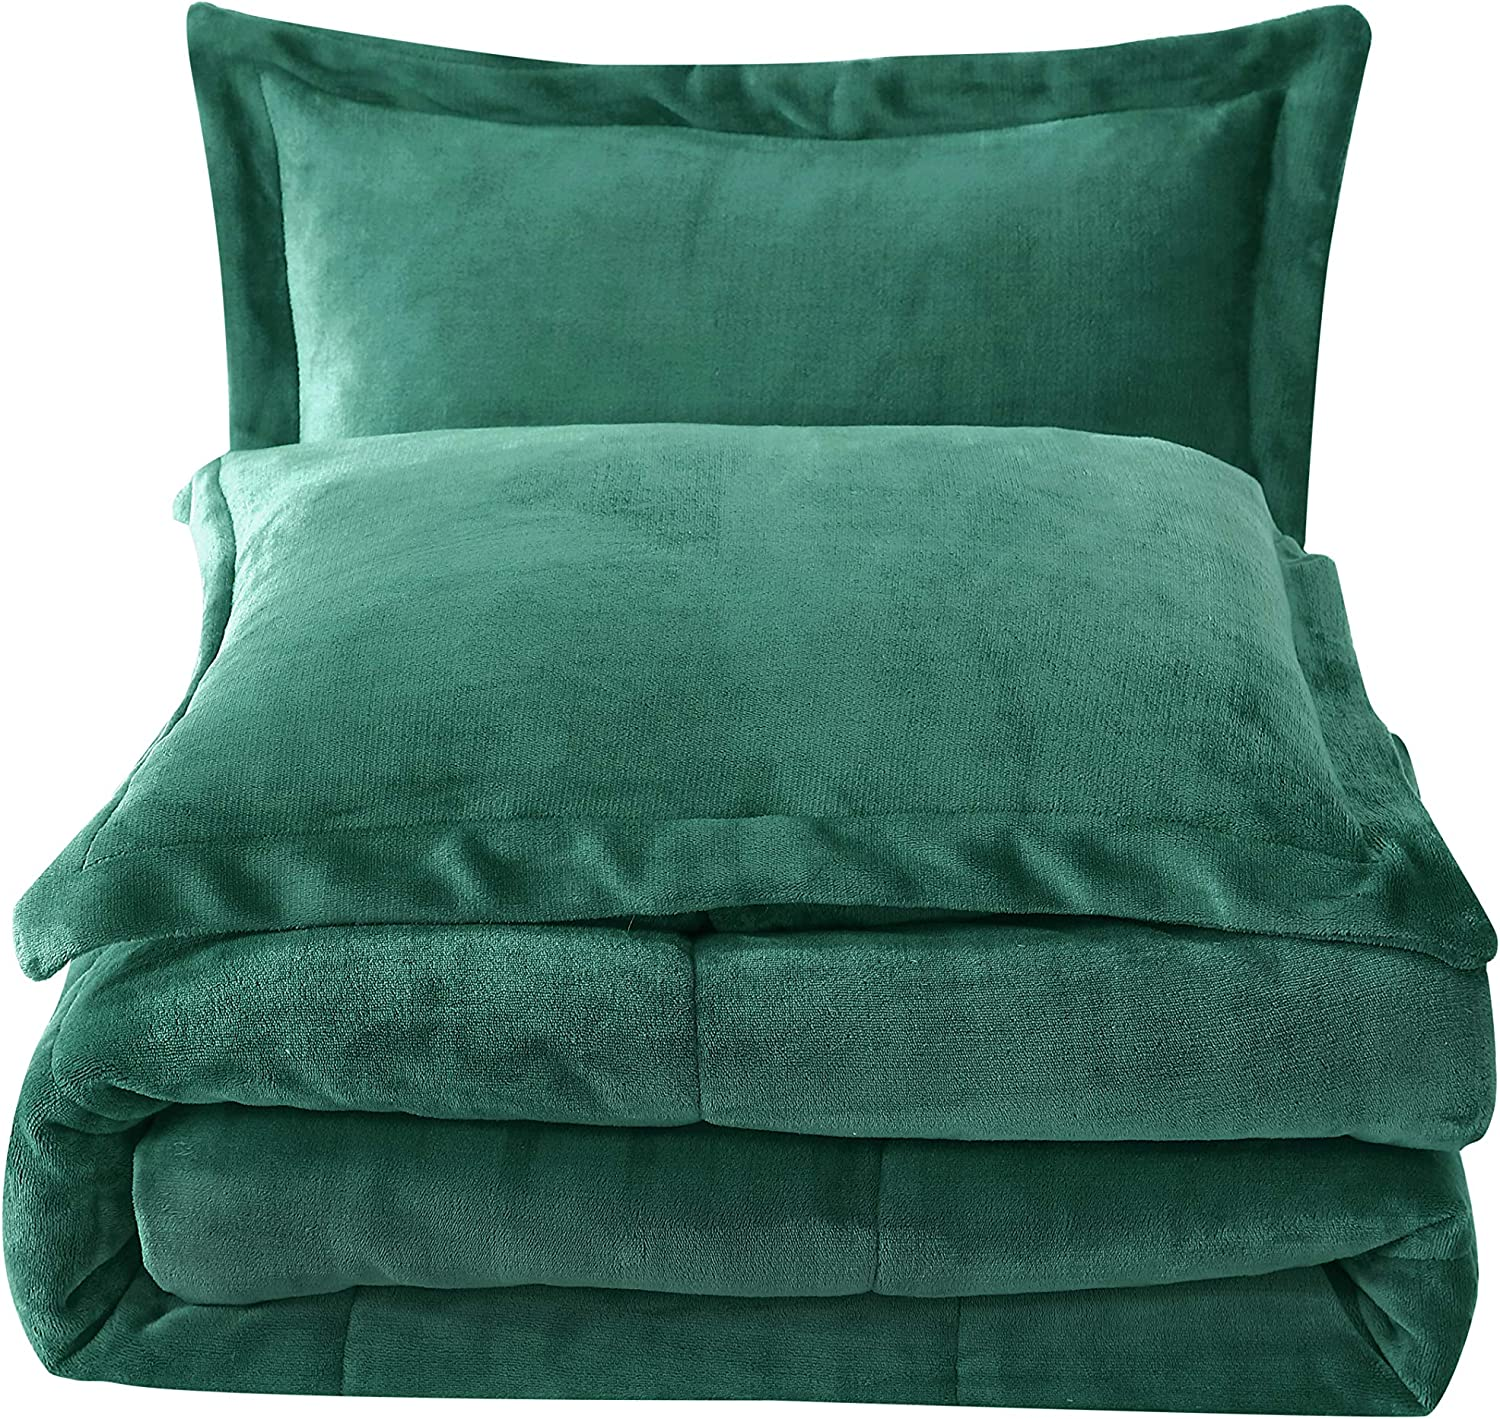 Chezmoi Collection FS200 3-Piece Micromink Sherpa Reversible Down Alternative Comforter Set (Queen, Green)